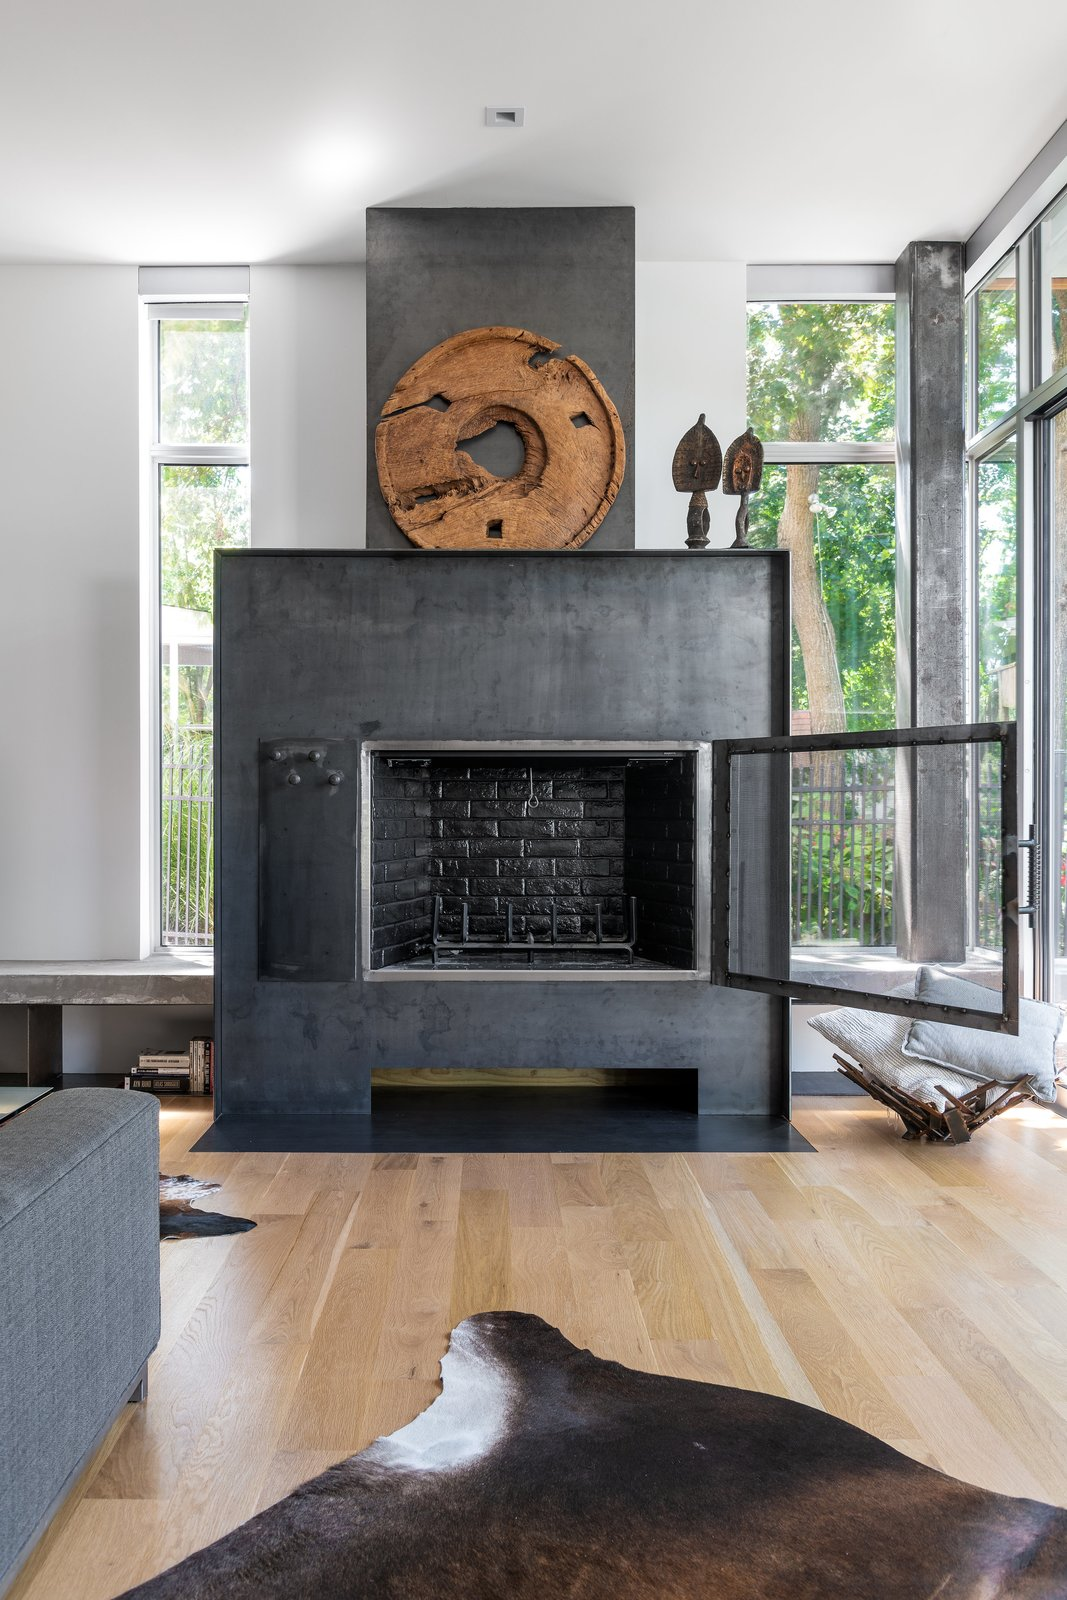 Living Room, Standard Layout Fireplace, Wood Burning Fireplace, Sofa, Light Hardwood Floor, Ceiling Lighting, Recessed Lighting, Bookcase, and Bench Fireplace Detail w/ Custom Hinged Screen  Spa Creek House by GriD